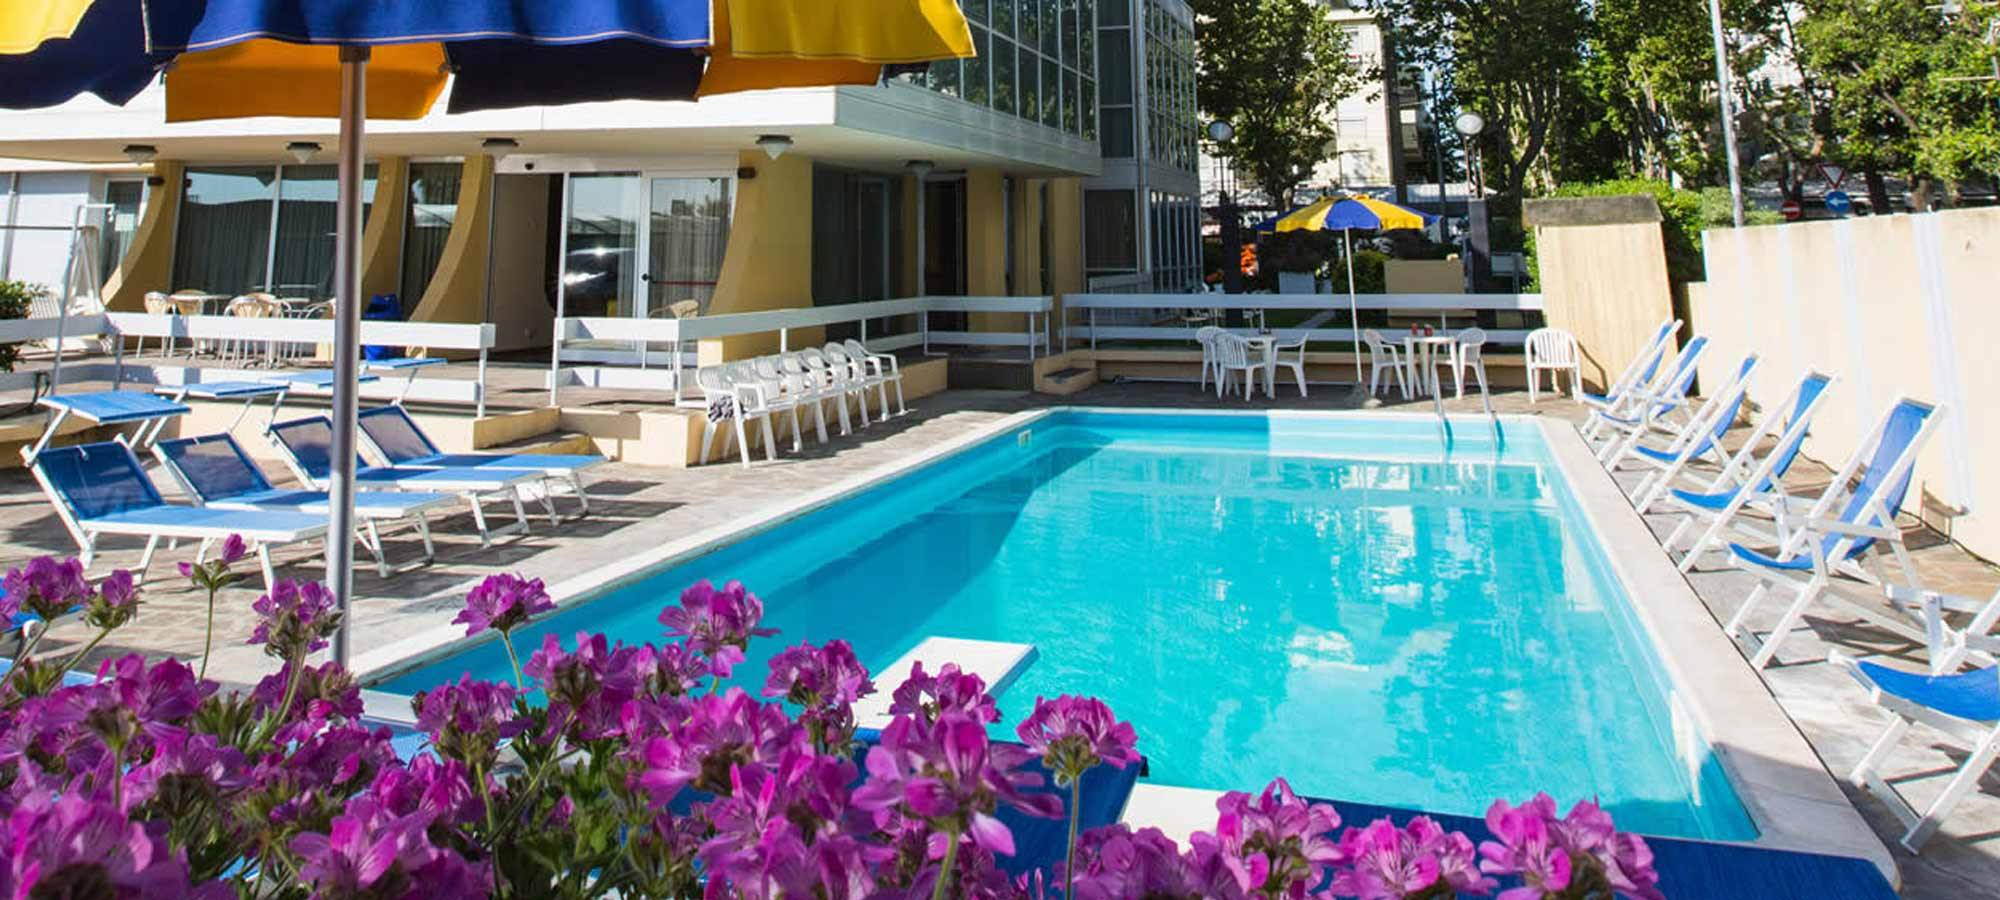 Merveilleux 3 Star Superior Hotel Rimini With Pool And Sun Deck Area Surrounded By  Greenery | Hotel